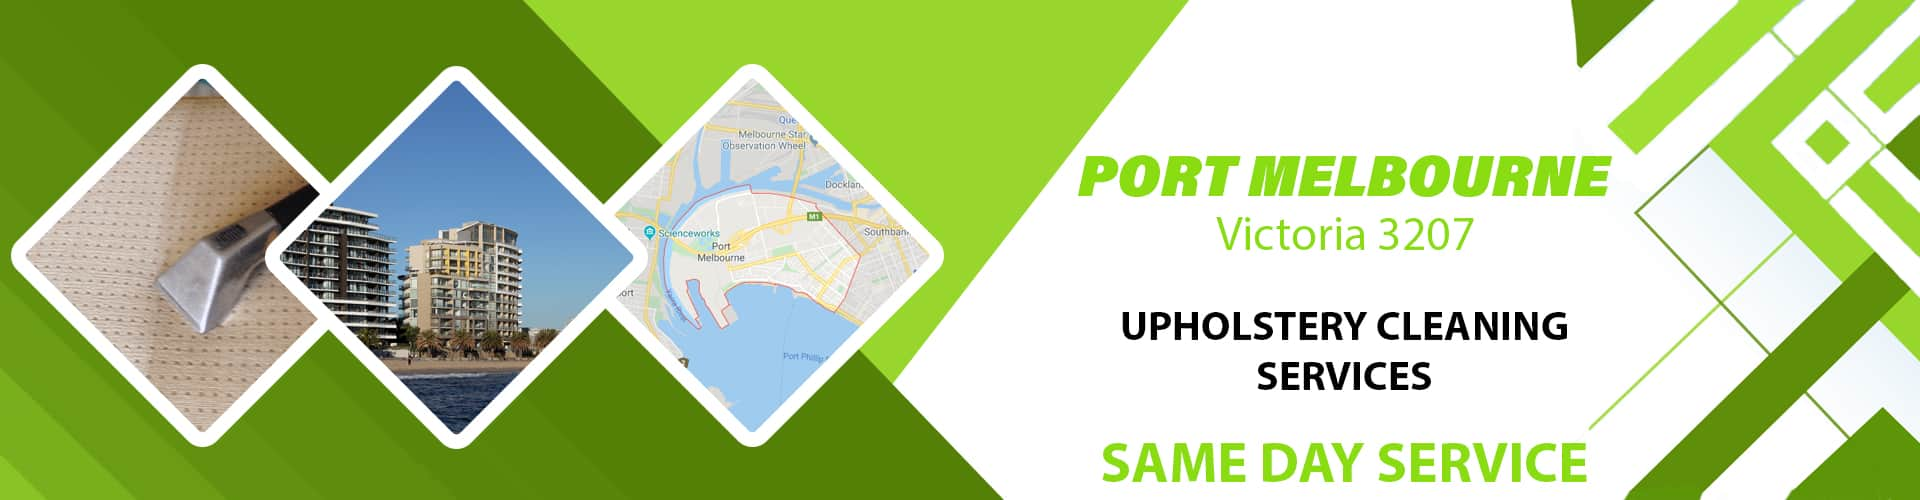 Upholstery Cleaning Port-Melbourne